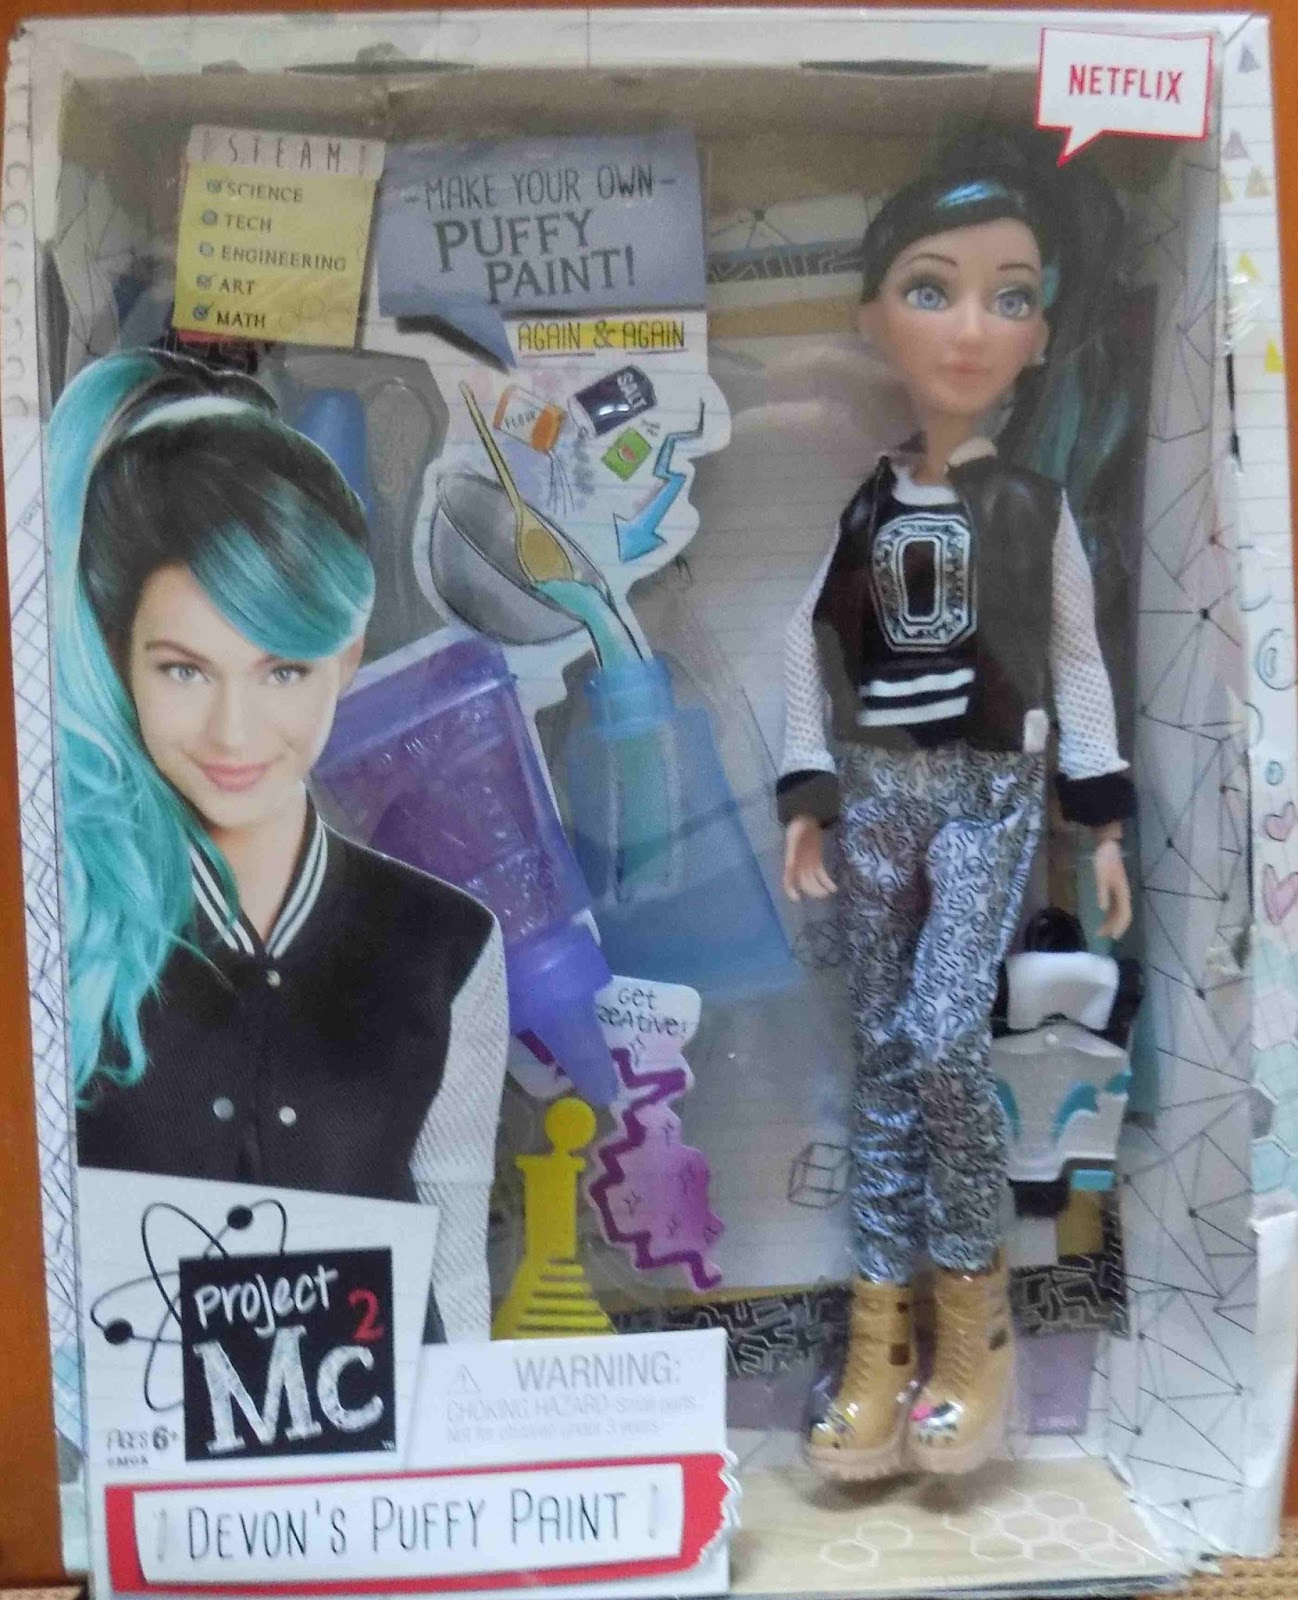 Its Quite Rare To Find A Range Of Toys That Is Both Educational And Fun Appeals Just As Much Parents Children But Project Mc2 Certainly